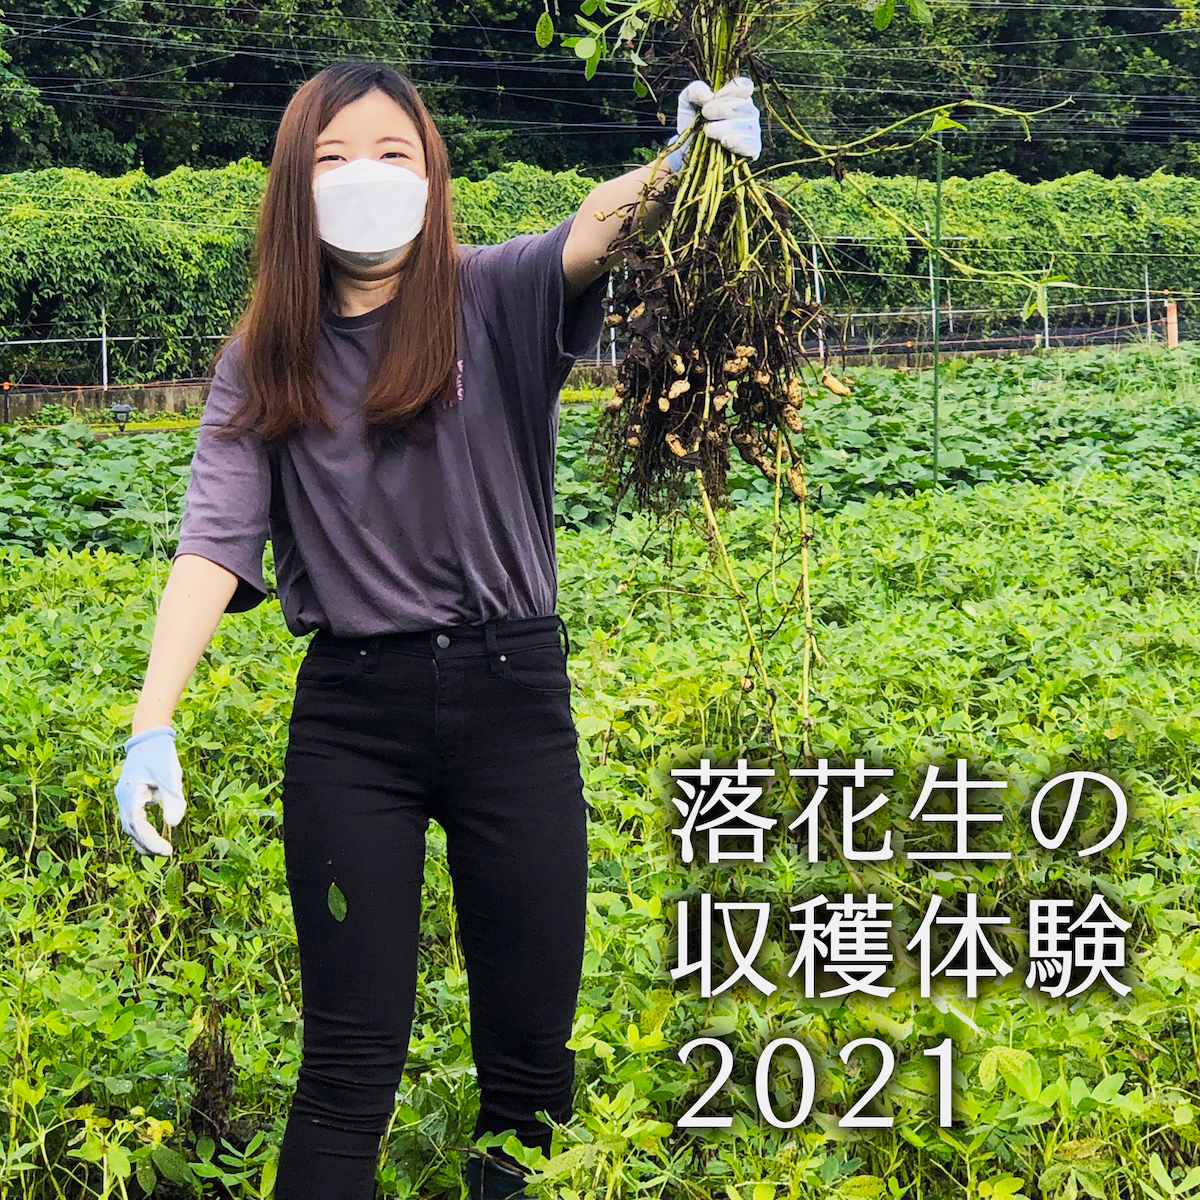 You are currently viewing 落花生の収穫体験 2021